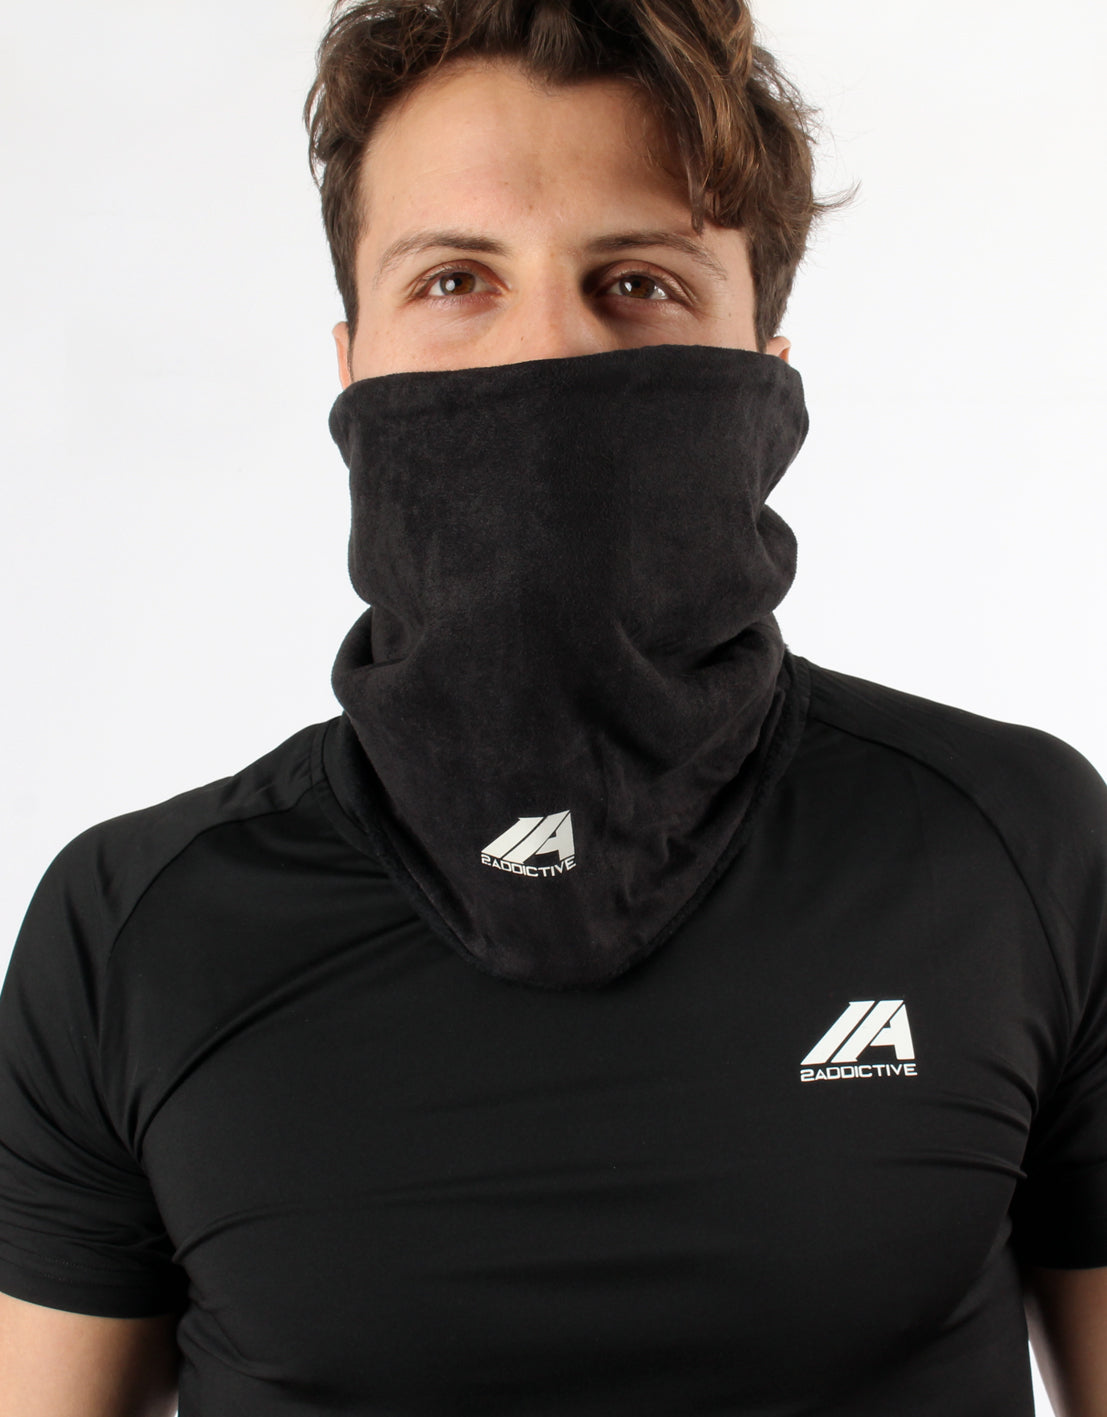 Neck Warmer - Black - 2 Addictive